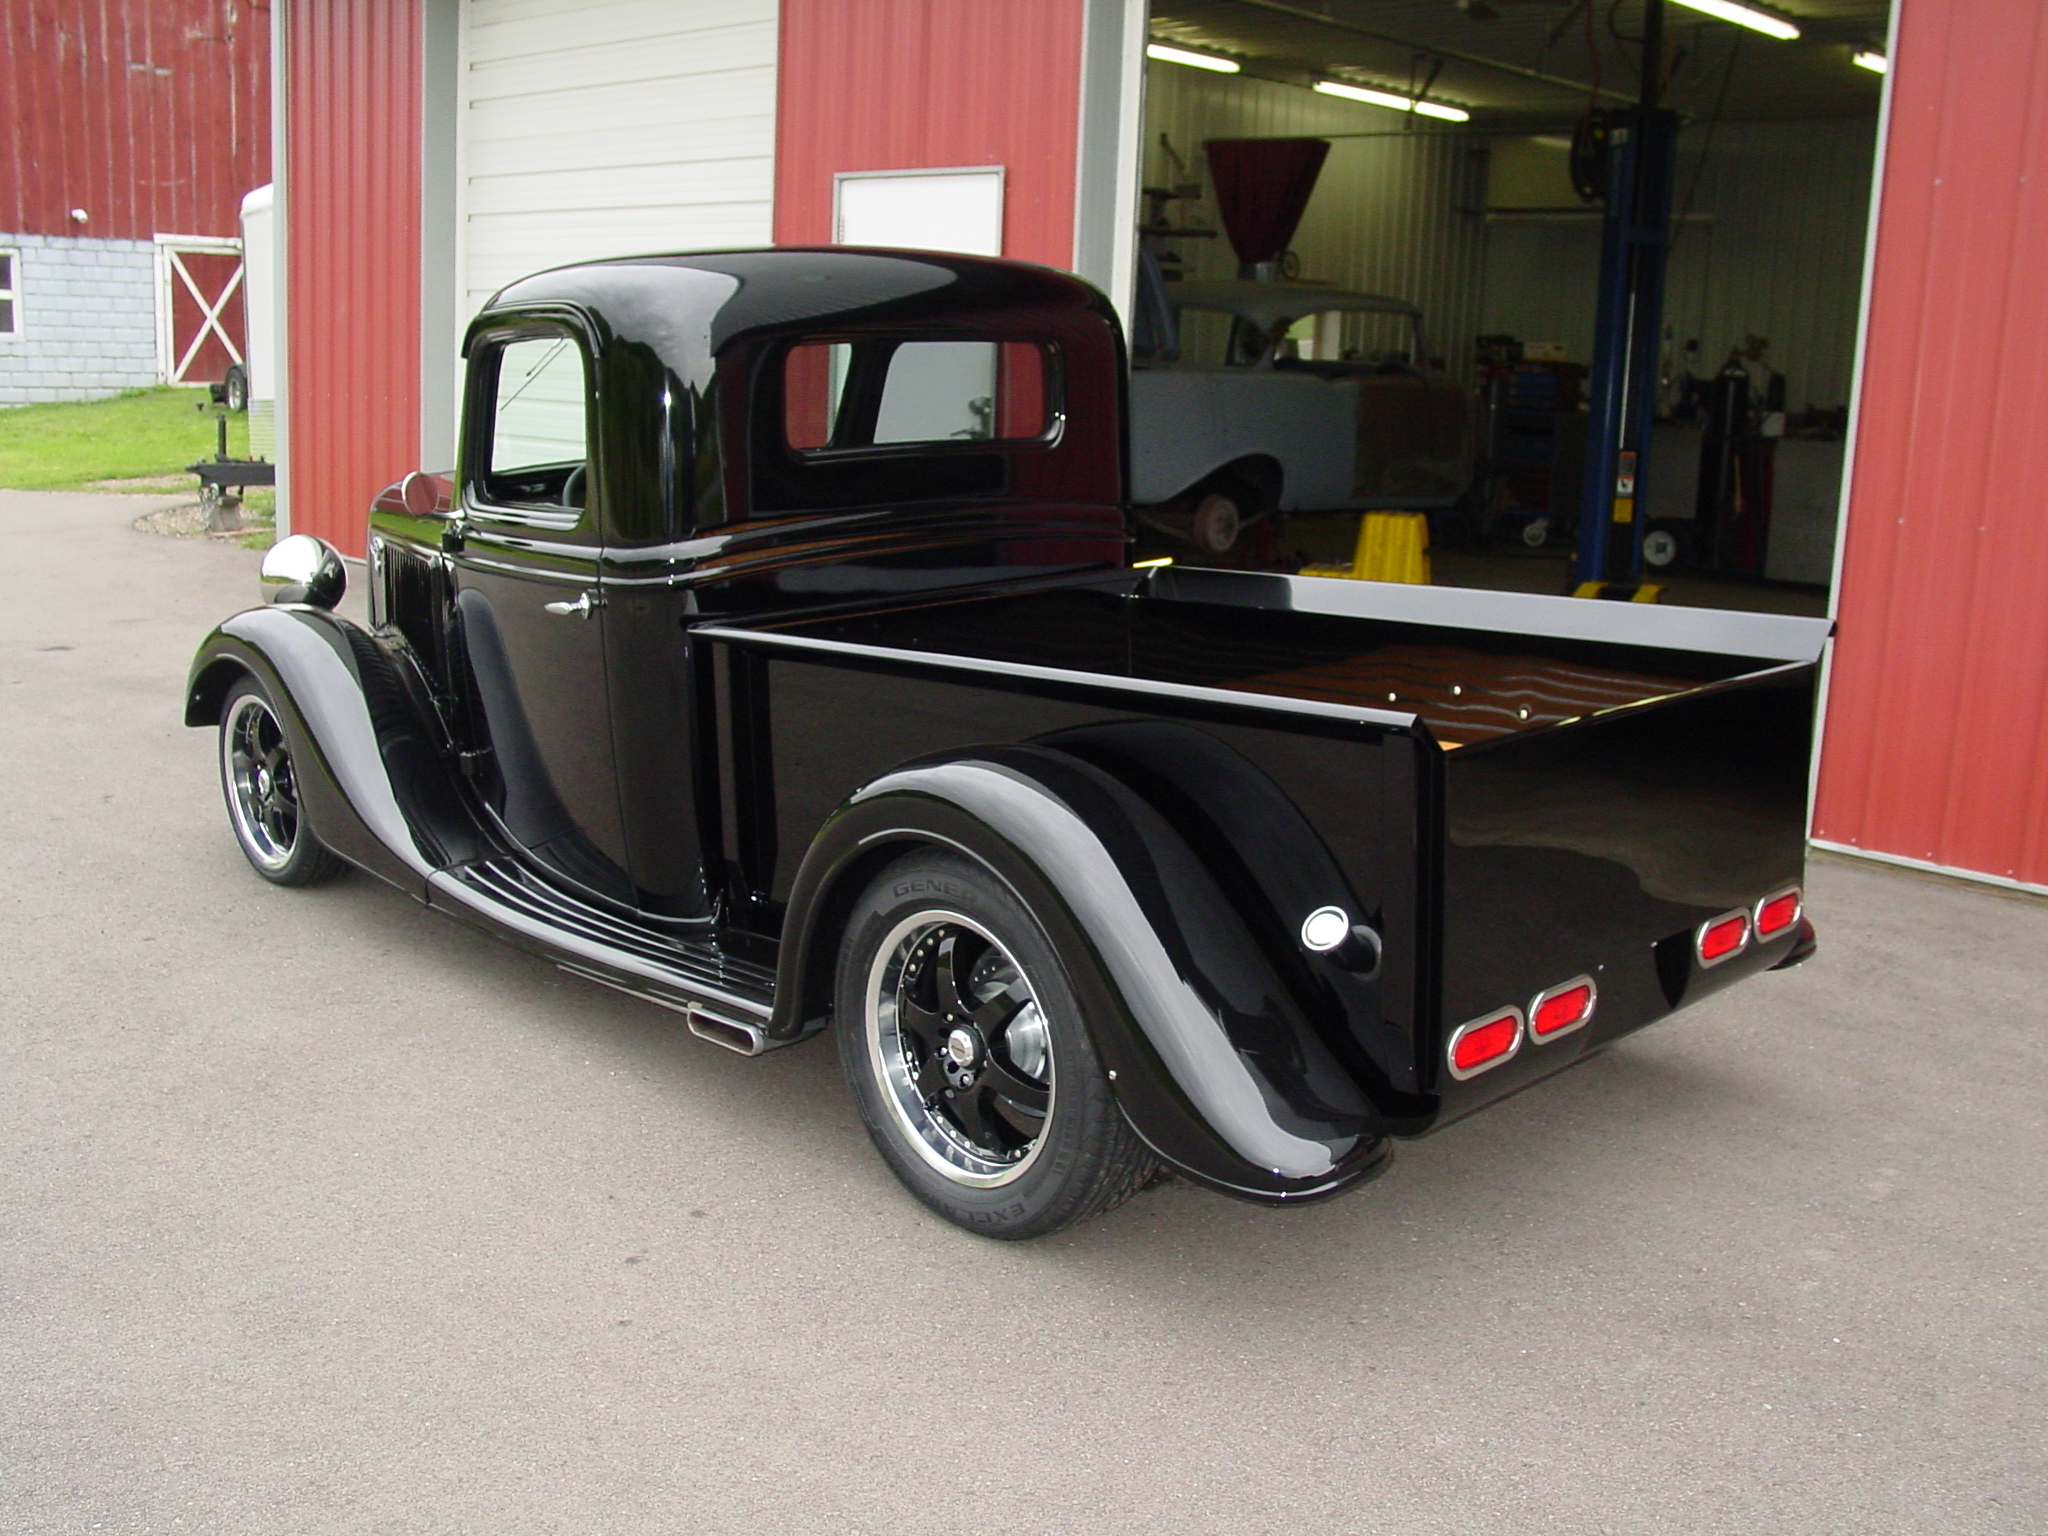 Forum posts likewise Israels Army Deploys Autonomous Ford Patrol Trucks as well 121734962 furthermore 1936 Ford Pickup also Wiring Diagram For 9n Ford Tractor. on ford remote start